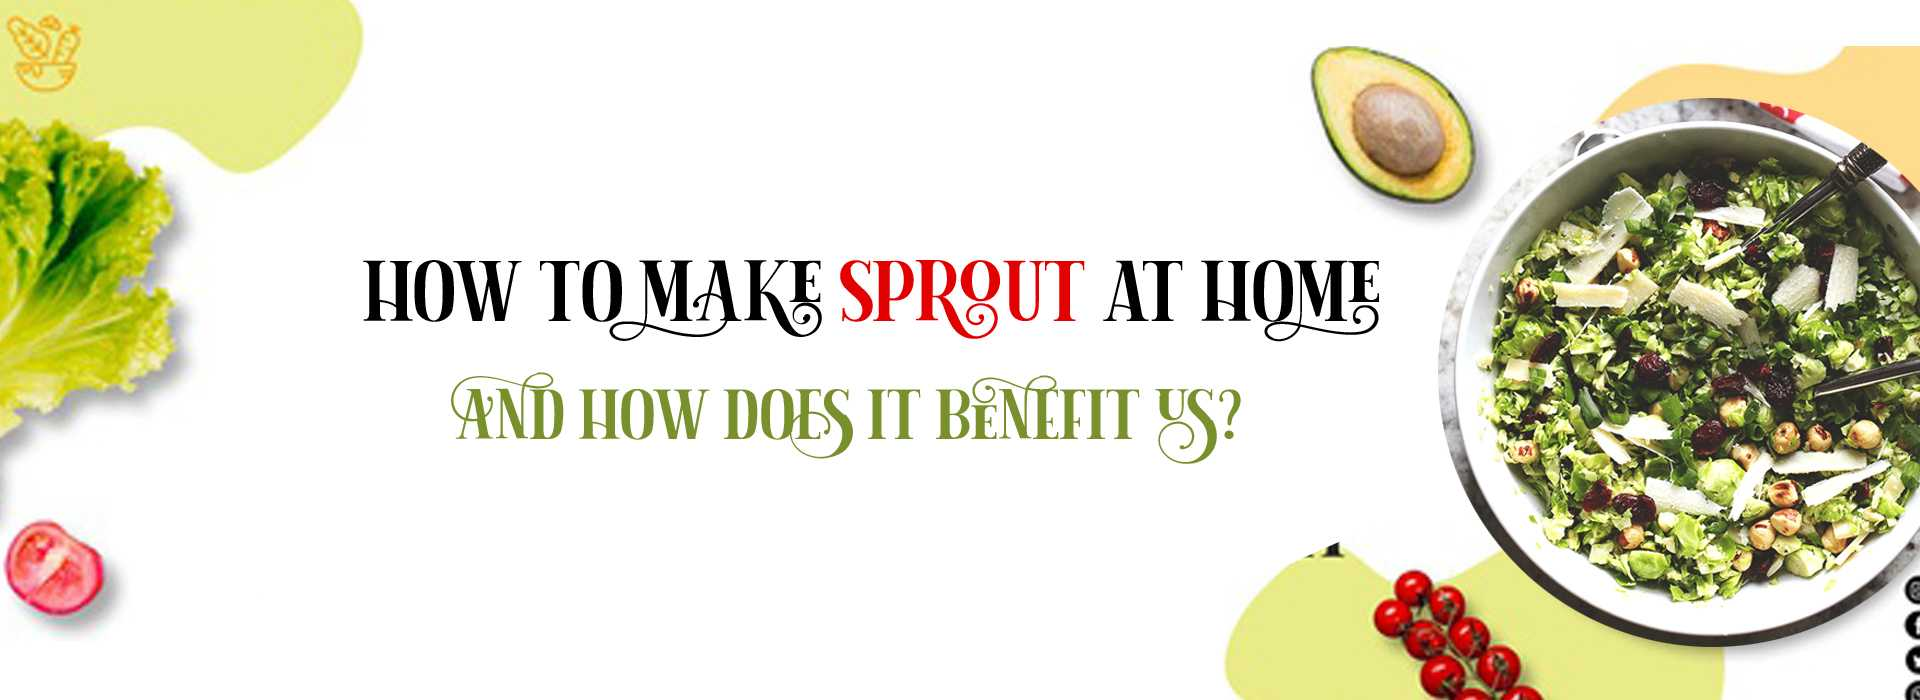 sprout benefits